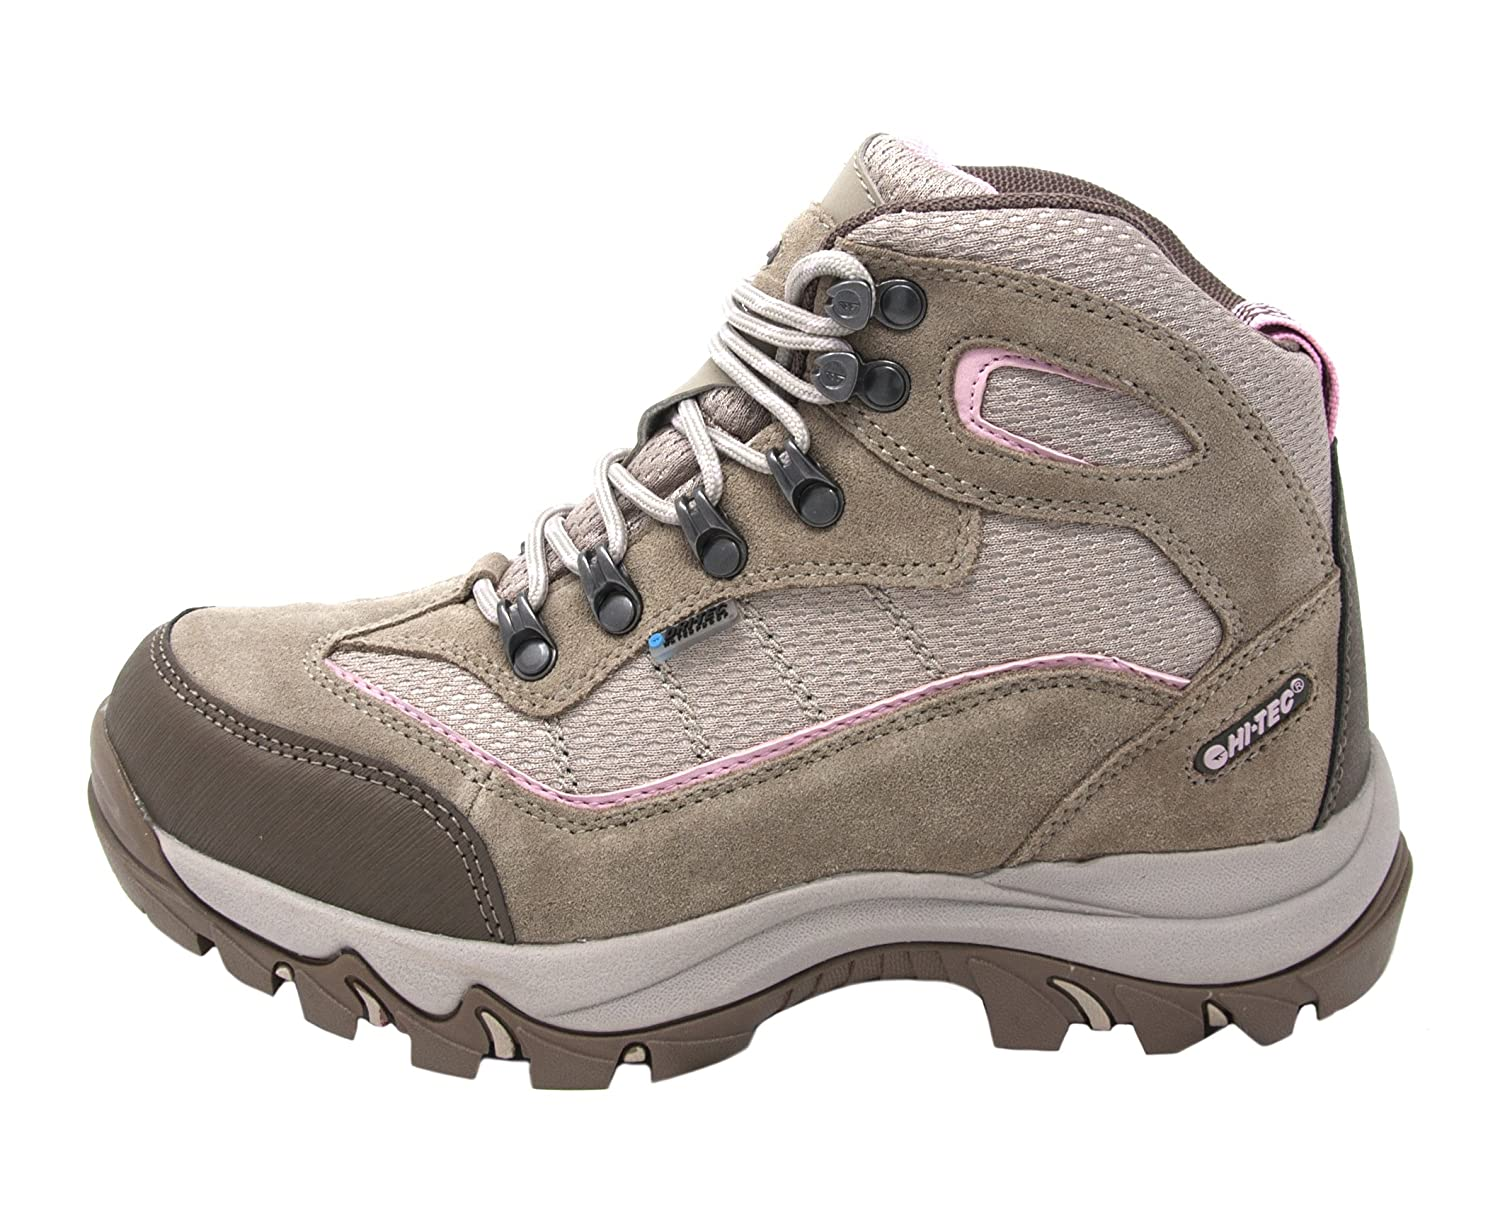 29bb267f28b Hi-Tec Women's Skamania Mid-Rise Waterproof Hiking Boot (9 B(M) US ...